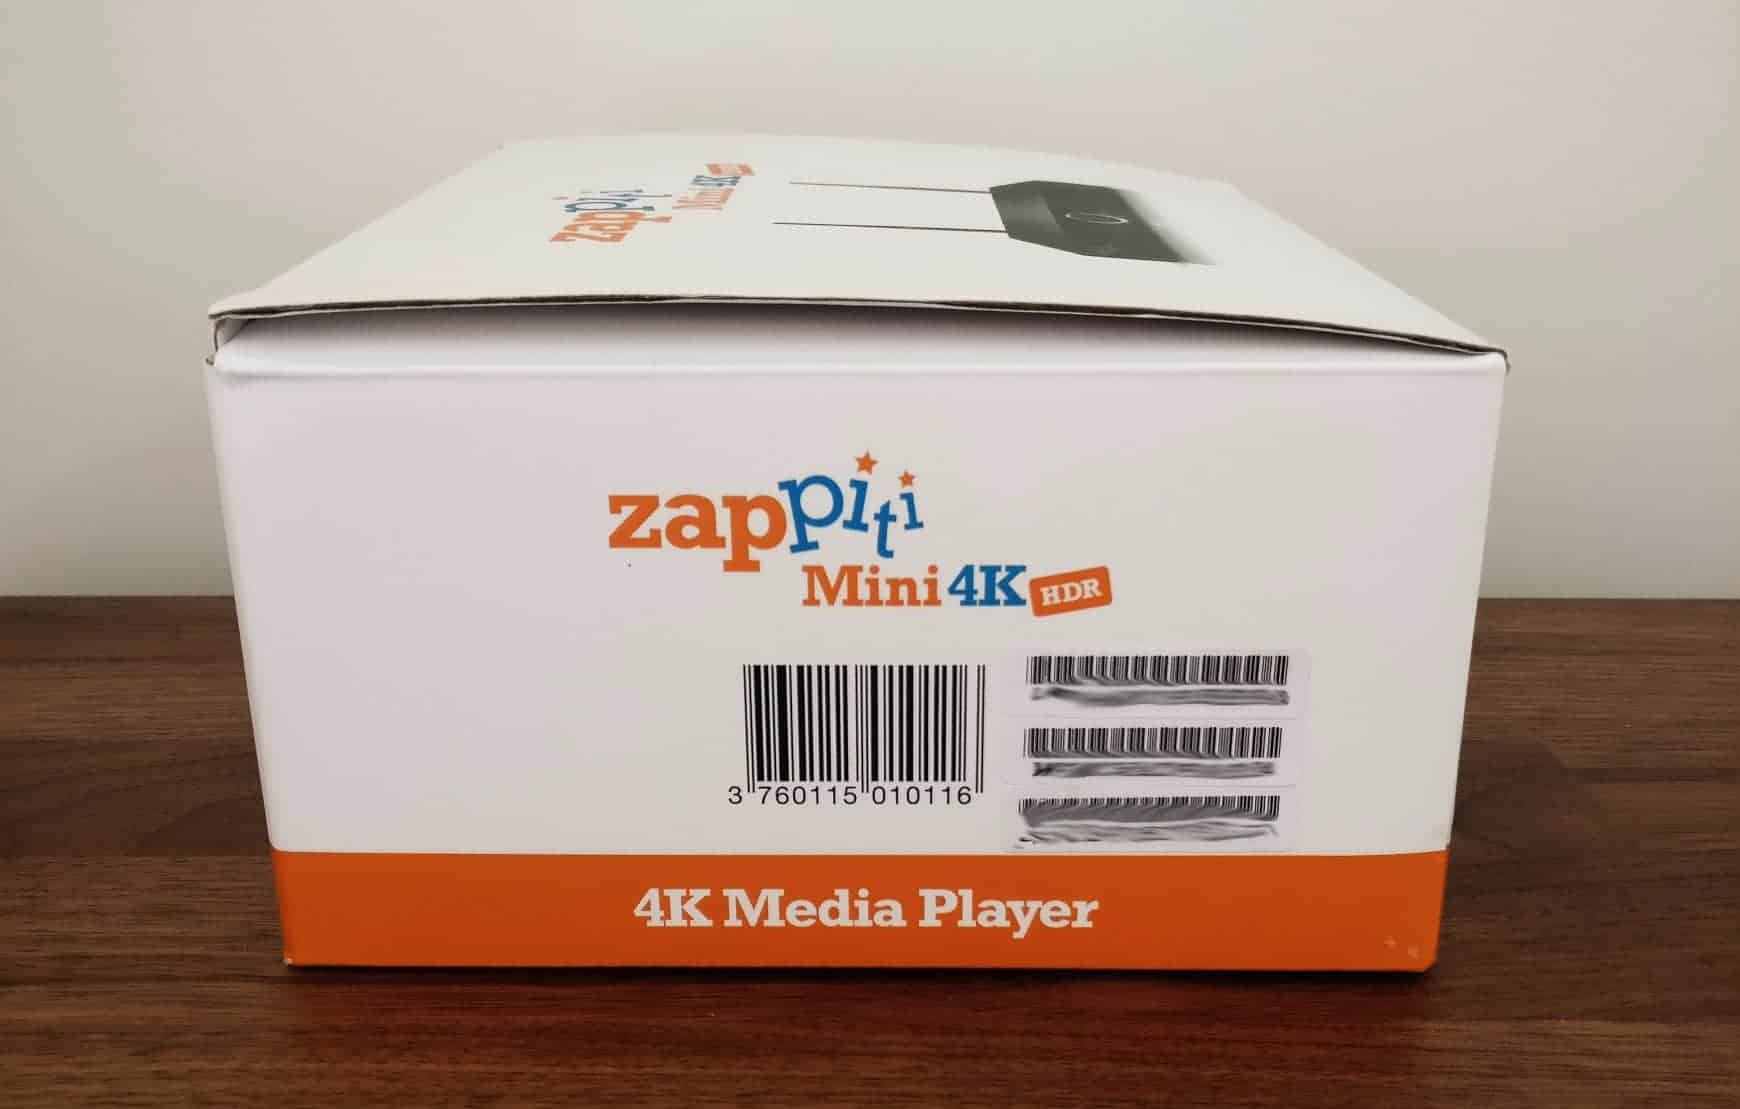 Zappiti-Photos03 Zappiti Mini 4K HDR Review